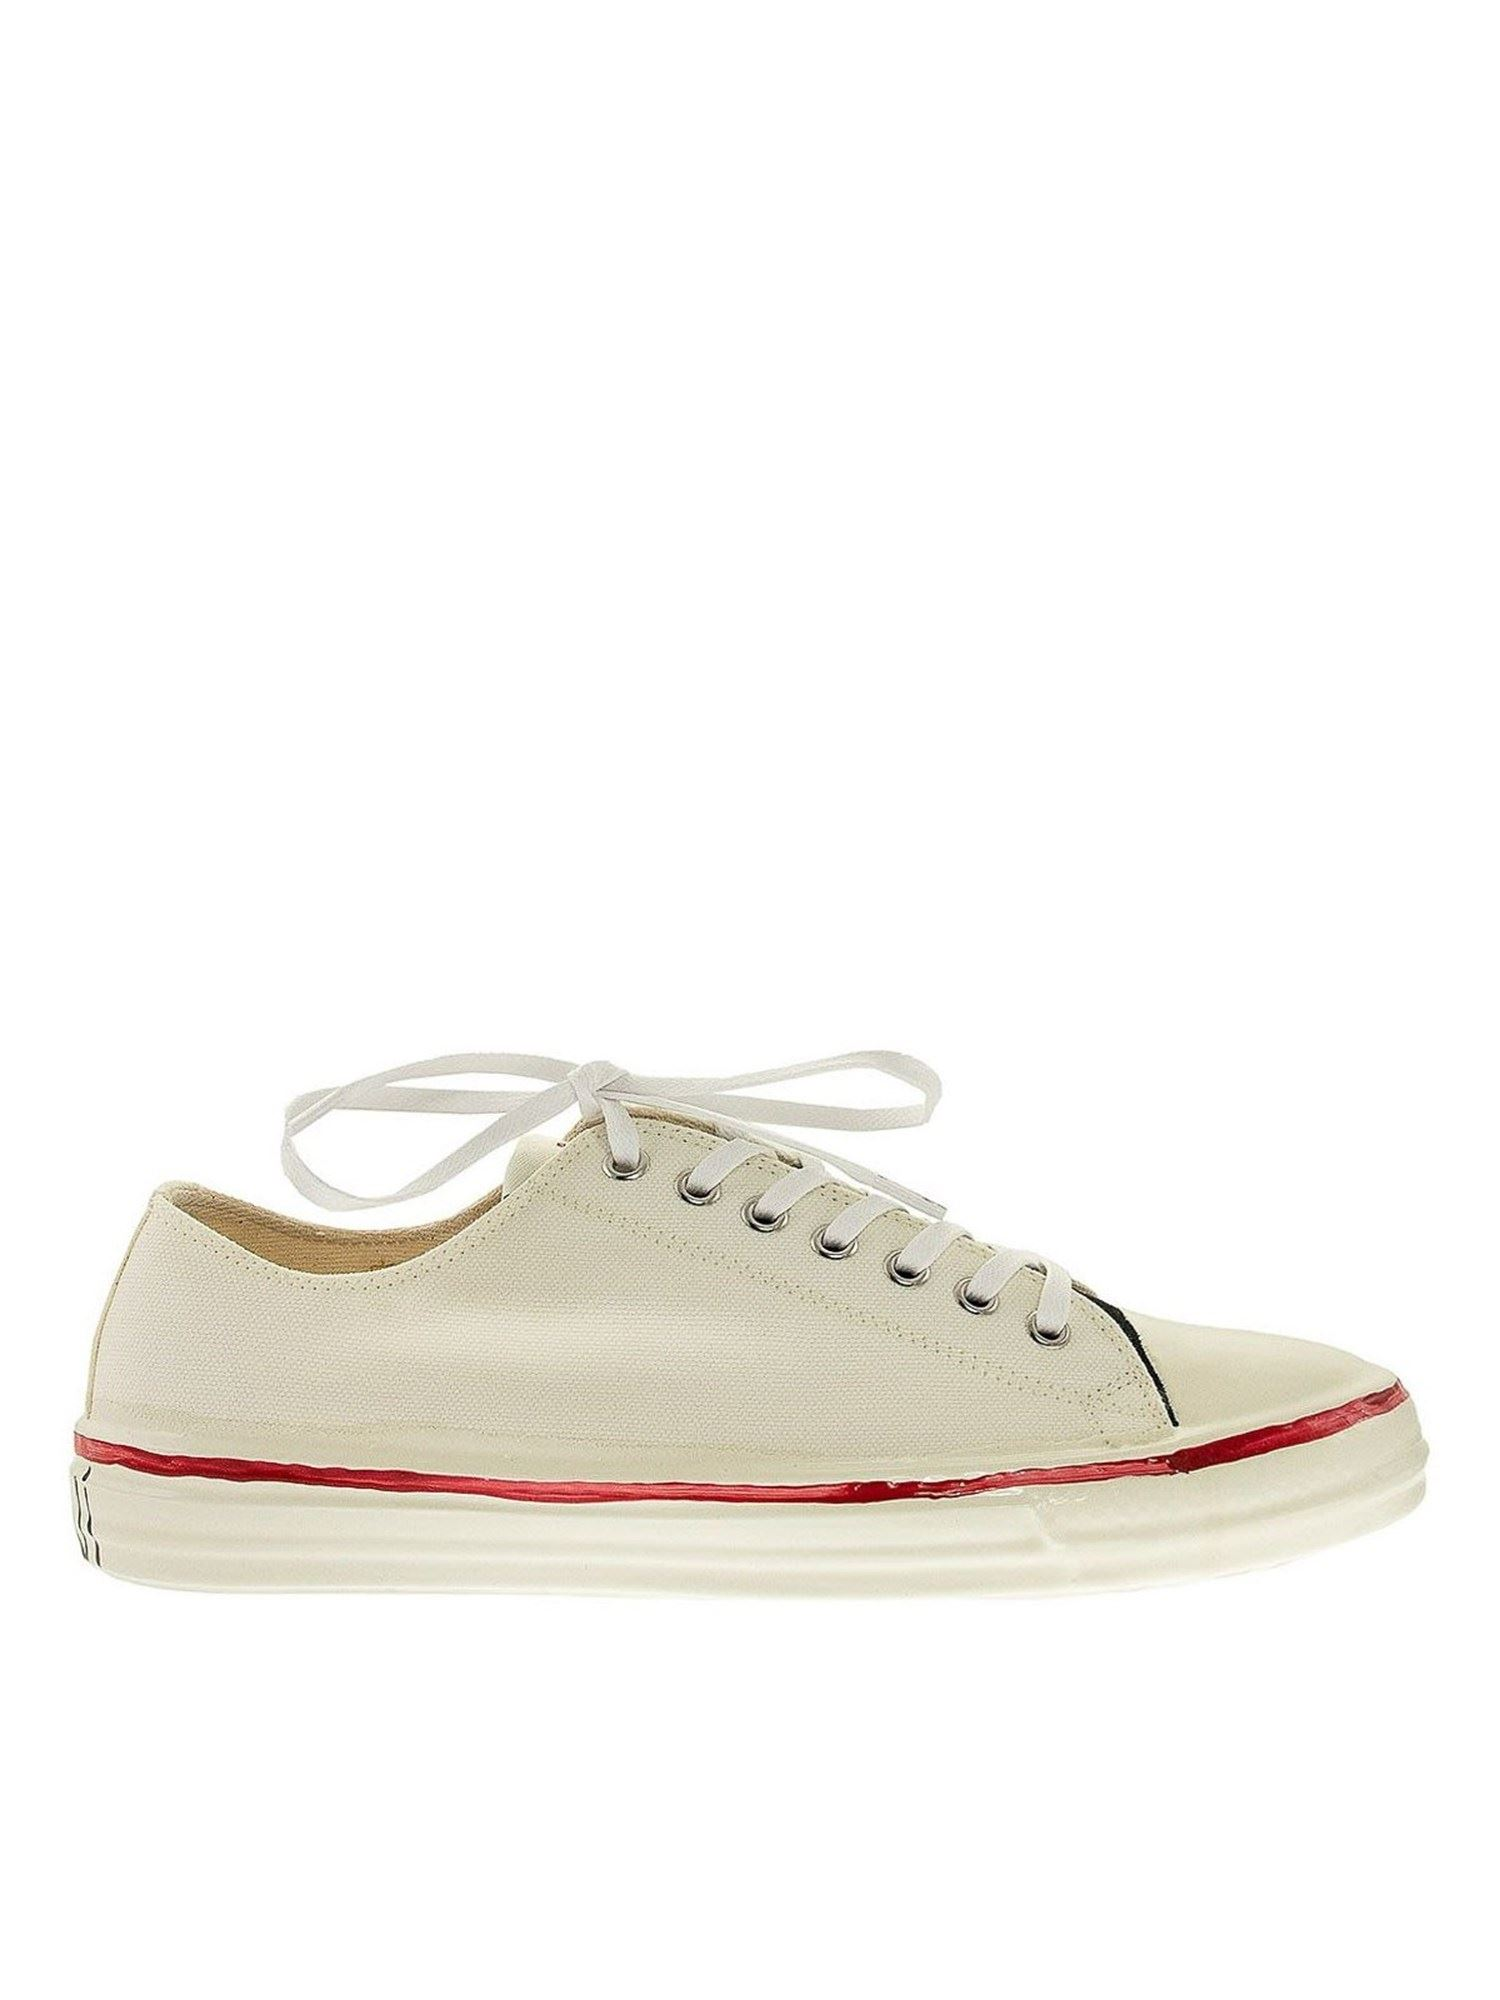 Marni LOGO SNEAKERS IN WHITE